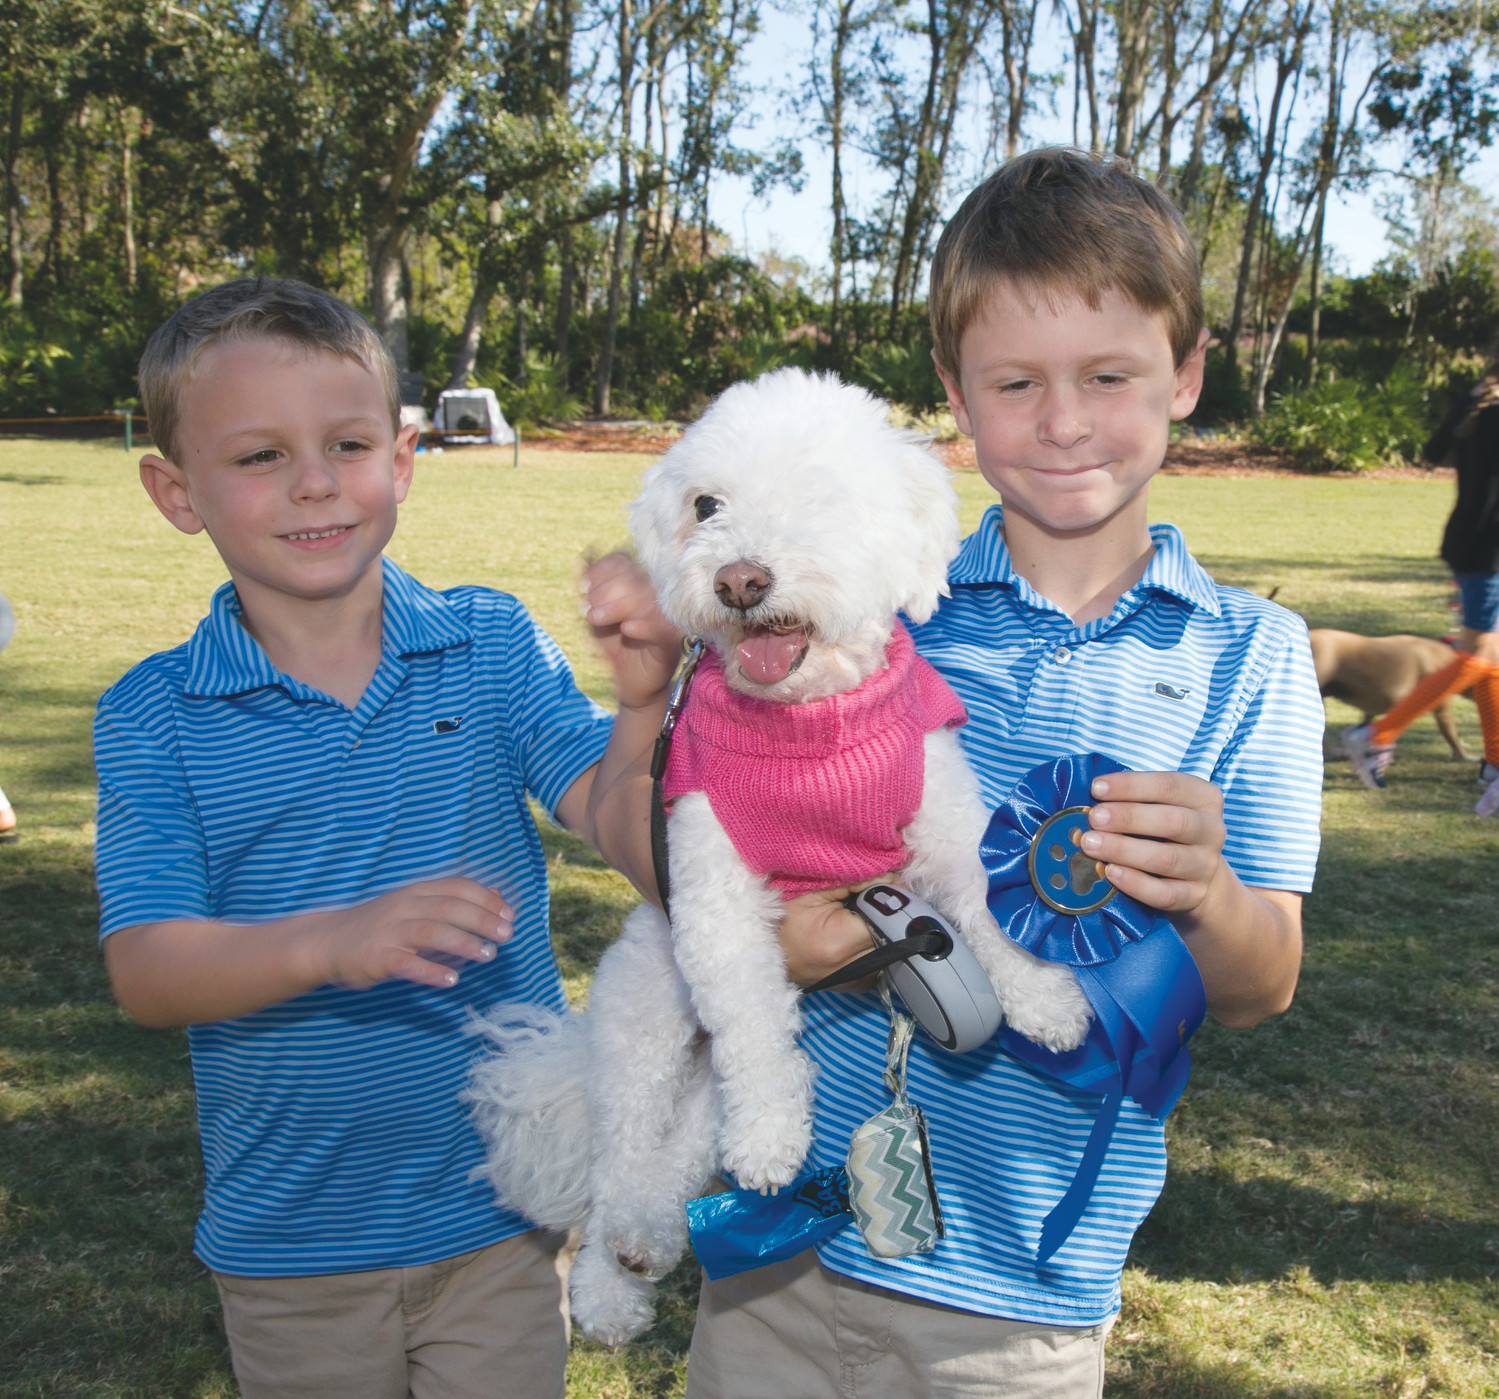 Knox, Memphis and Nash Cartwright enjoy Bark in the Park at the Plantation at Ponte Vedra Beach Nov. 4. The event benefited the Plantation Foundation, a scholarship fund for employees and dependents of employees. The day included a dog agility demonstration, a friendly dog show, a photo booth for pets, a mobile pet Groomer, a SAFE pet rescue van, music, refreshments and a raffle to benefit the Plantation Foundation.